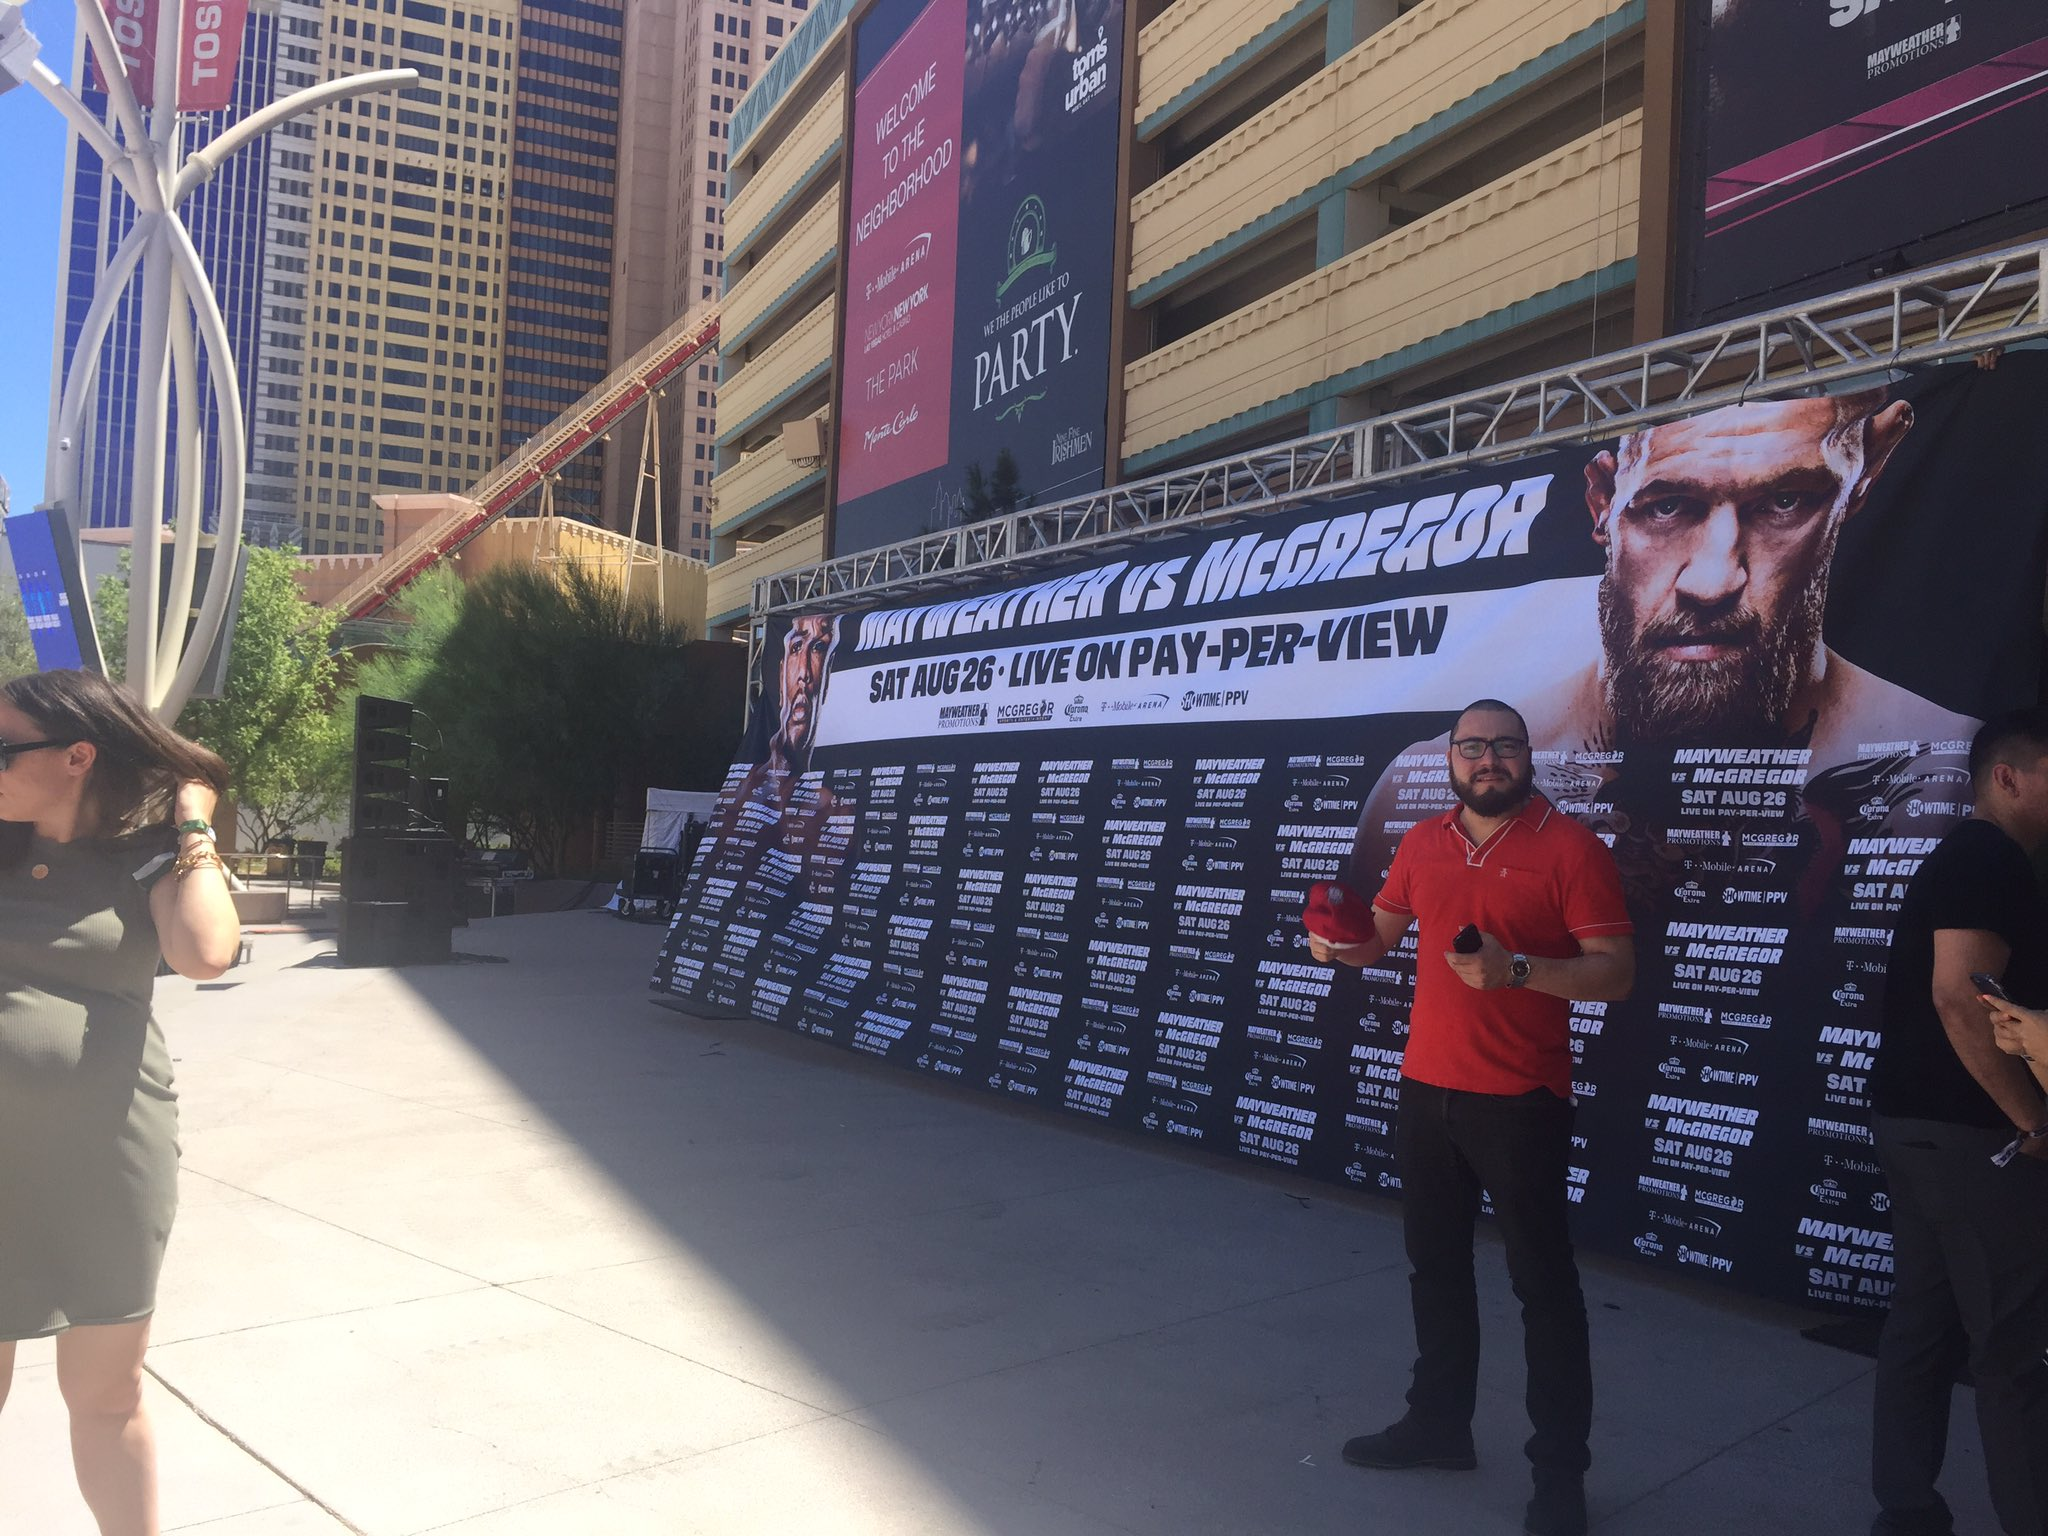 The stage is set for the Mayweather-McGregor grand entrance ahead of their Aug. 26 fight at T-Mobile Arena. (Antonio Castelan | KSNV)